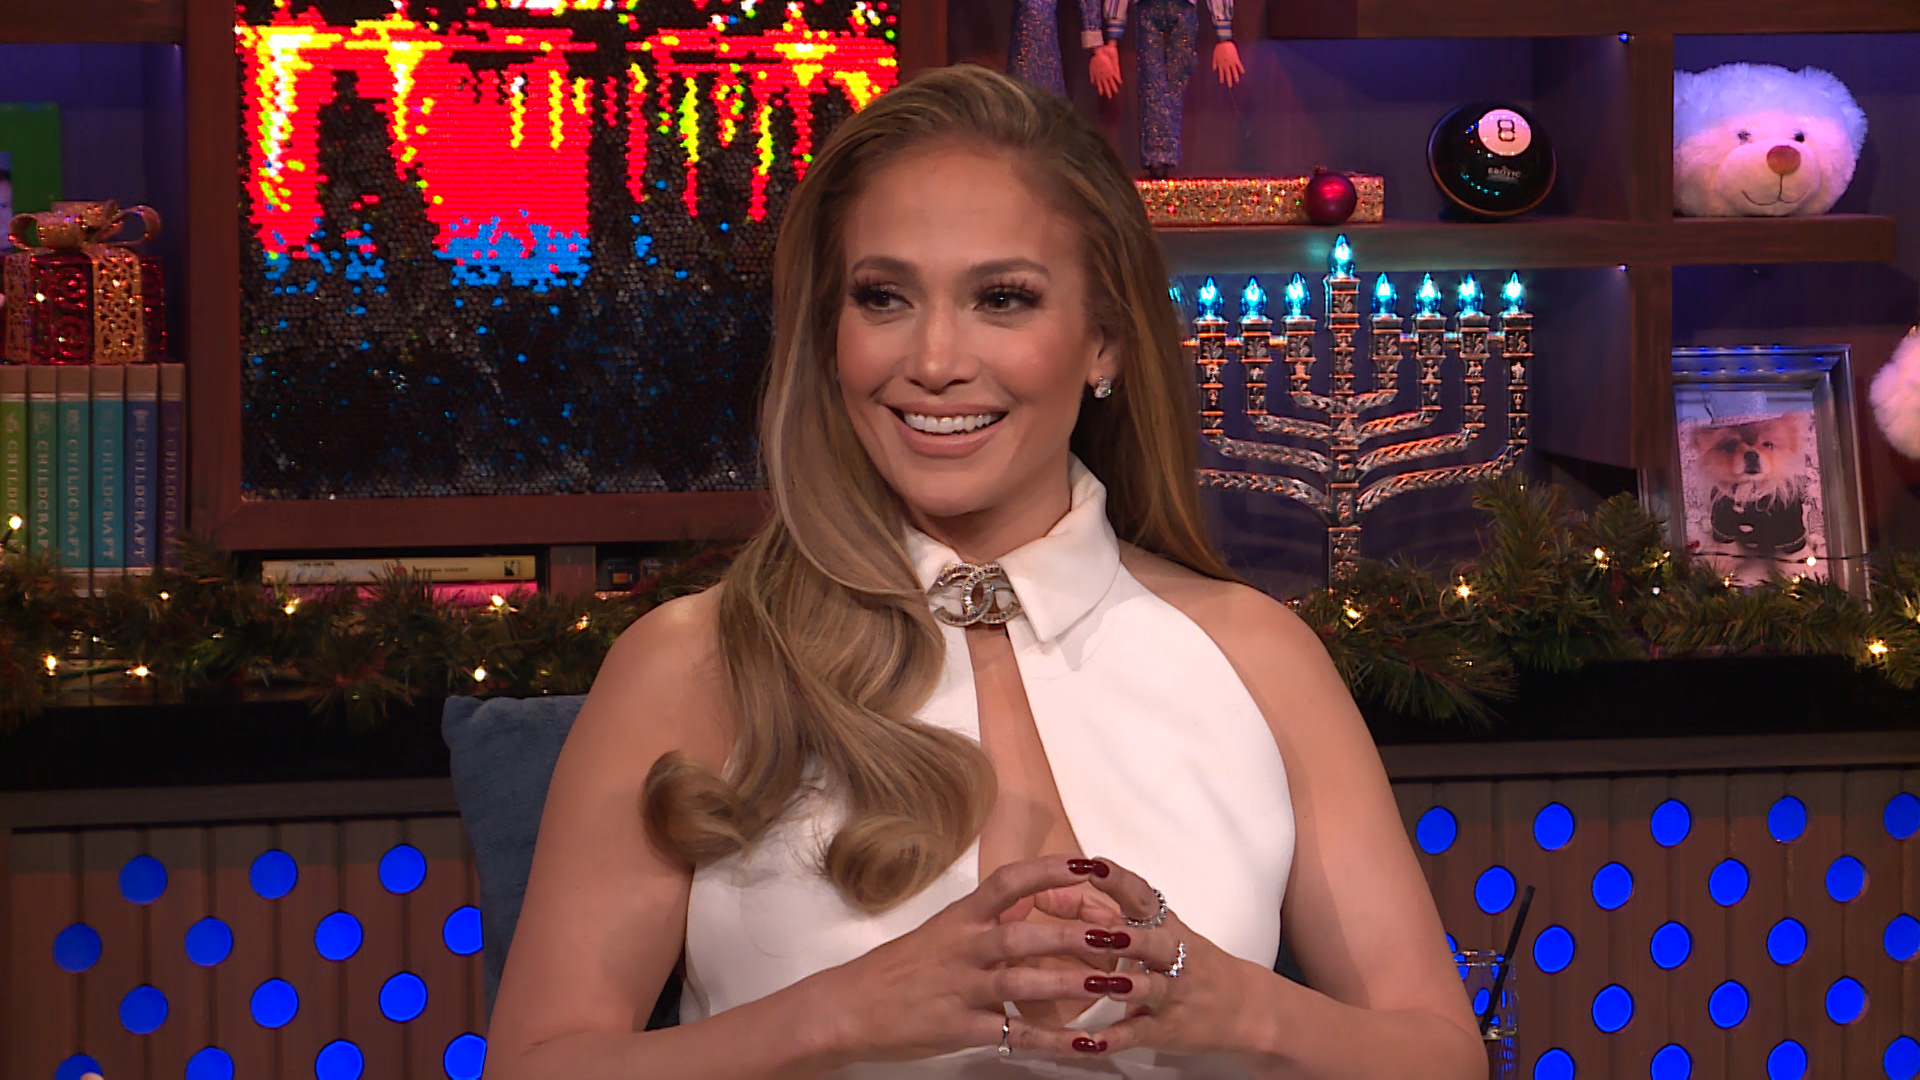 Jennifer Lopez on Directing Her Daughter in Her Music Video